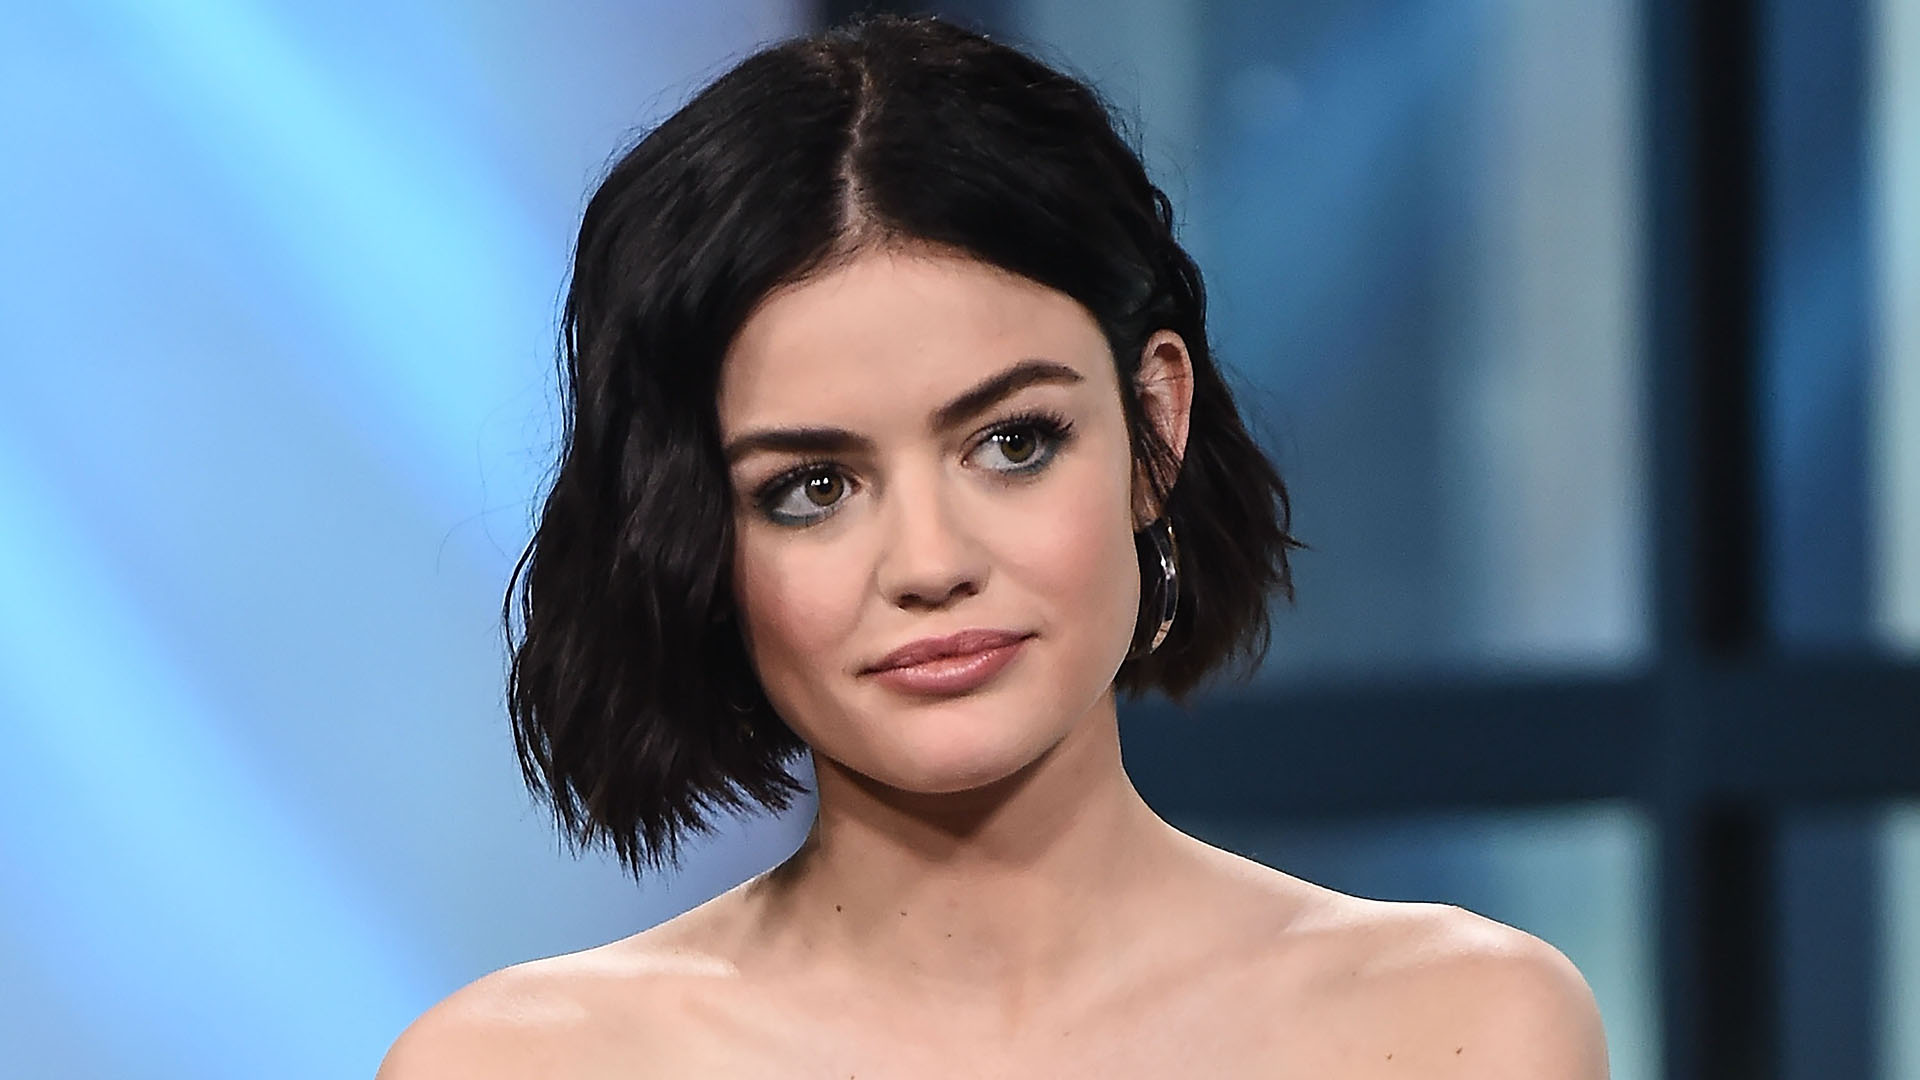 Lucy Hale to Star in 'Riverdale' Spinoff 'Katy Keene'